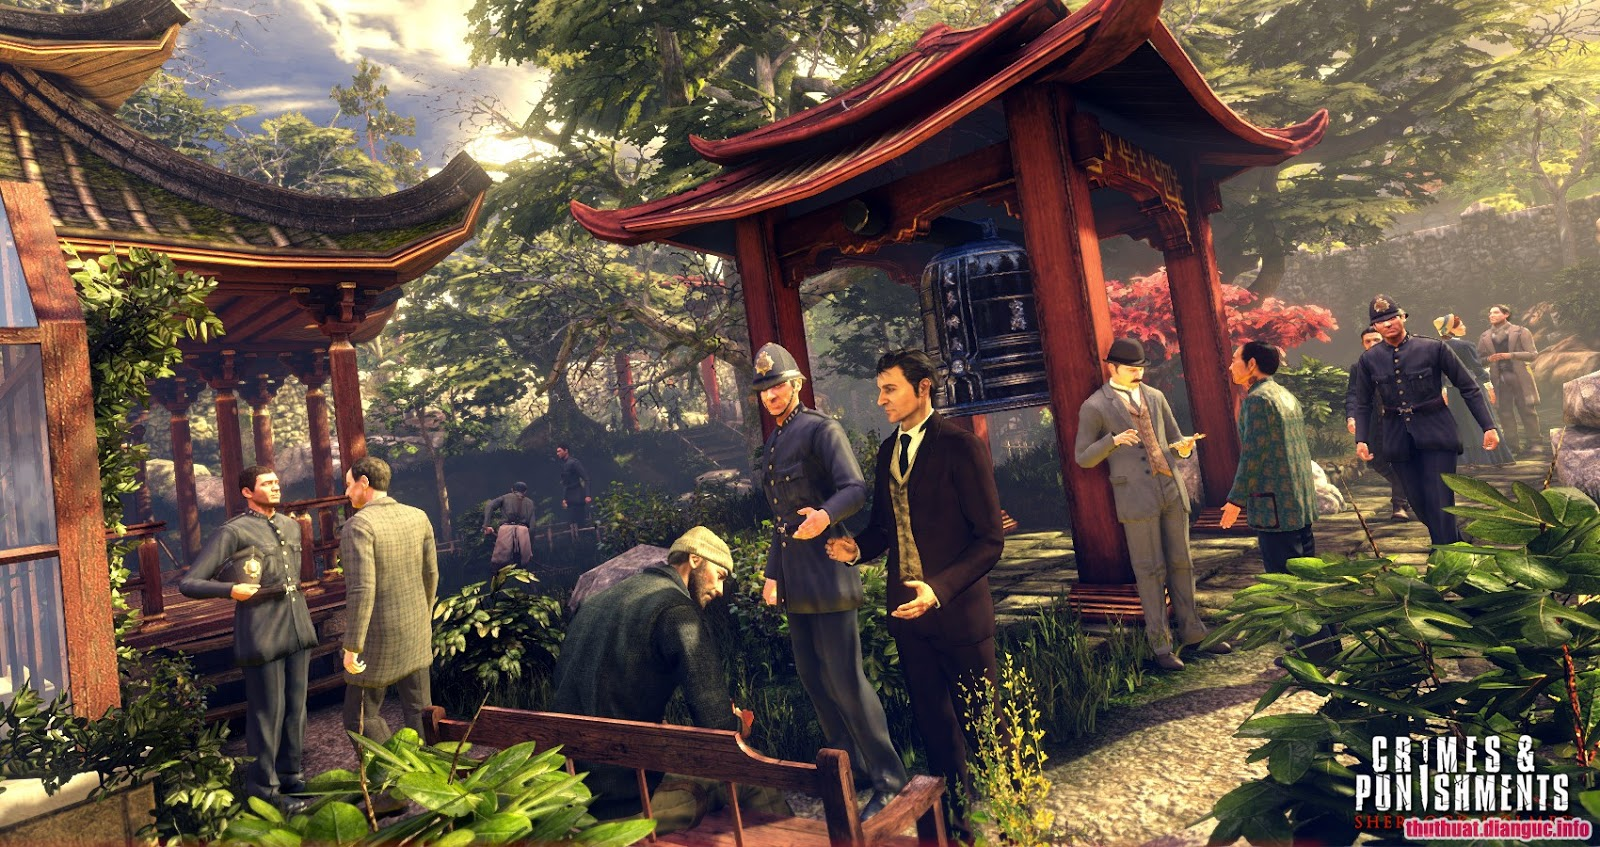 Tải Game Sherlock Holmes: Crimes and Punishments Full Crack, Sherlock Holmes Crimes and Punishments free download